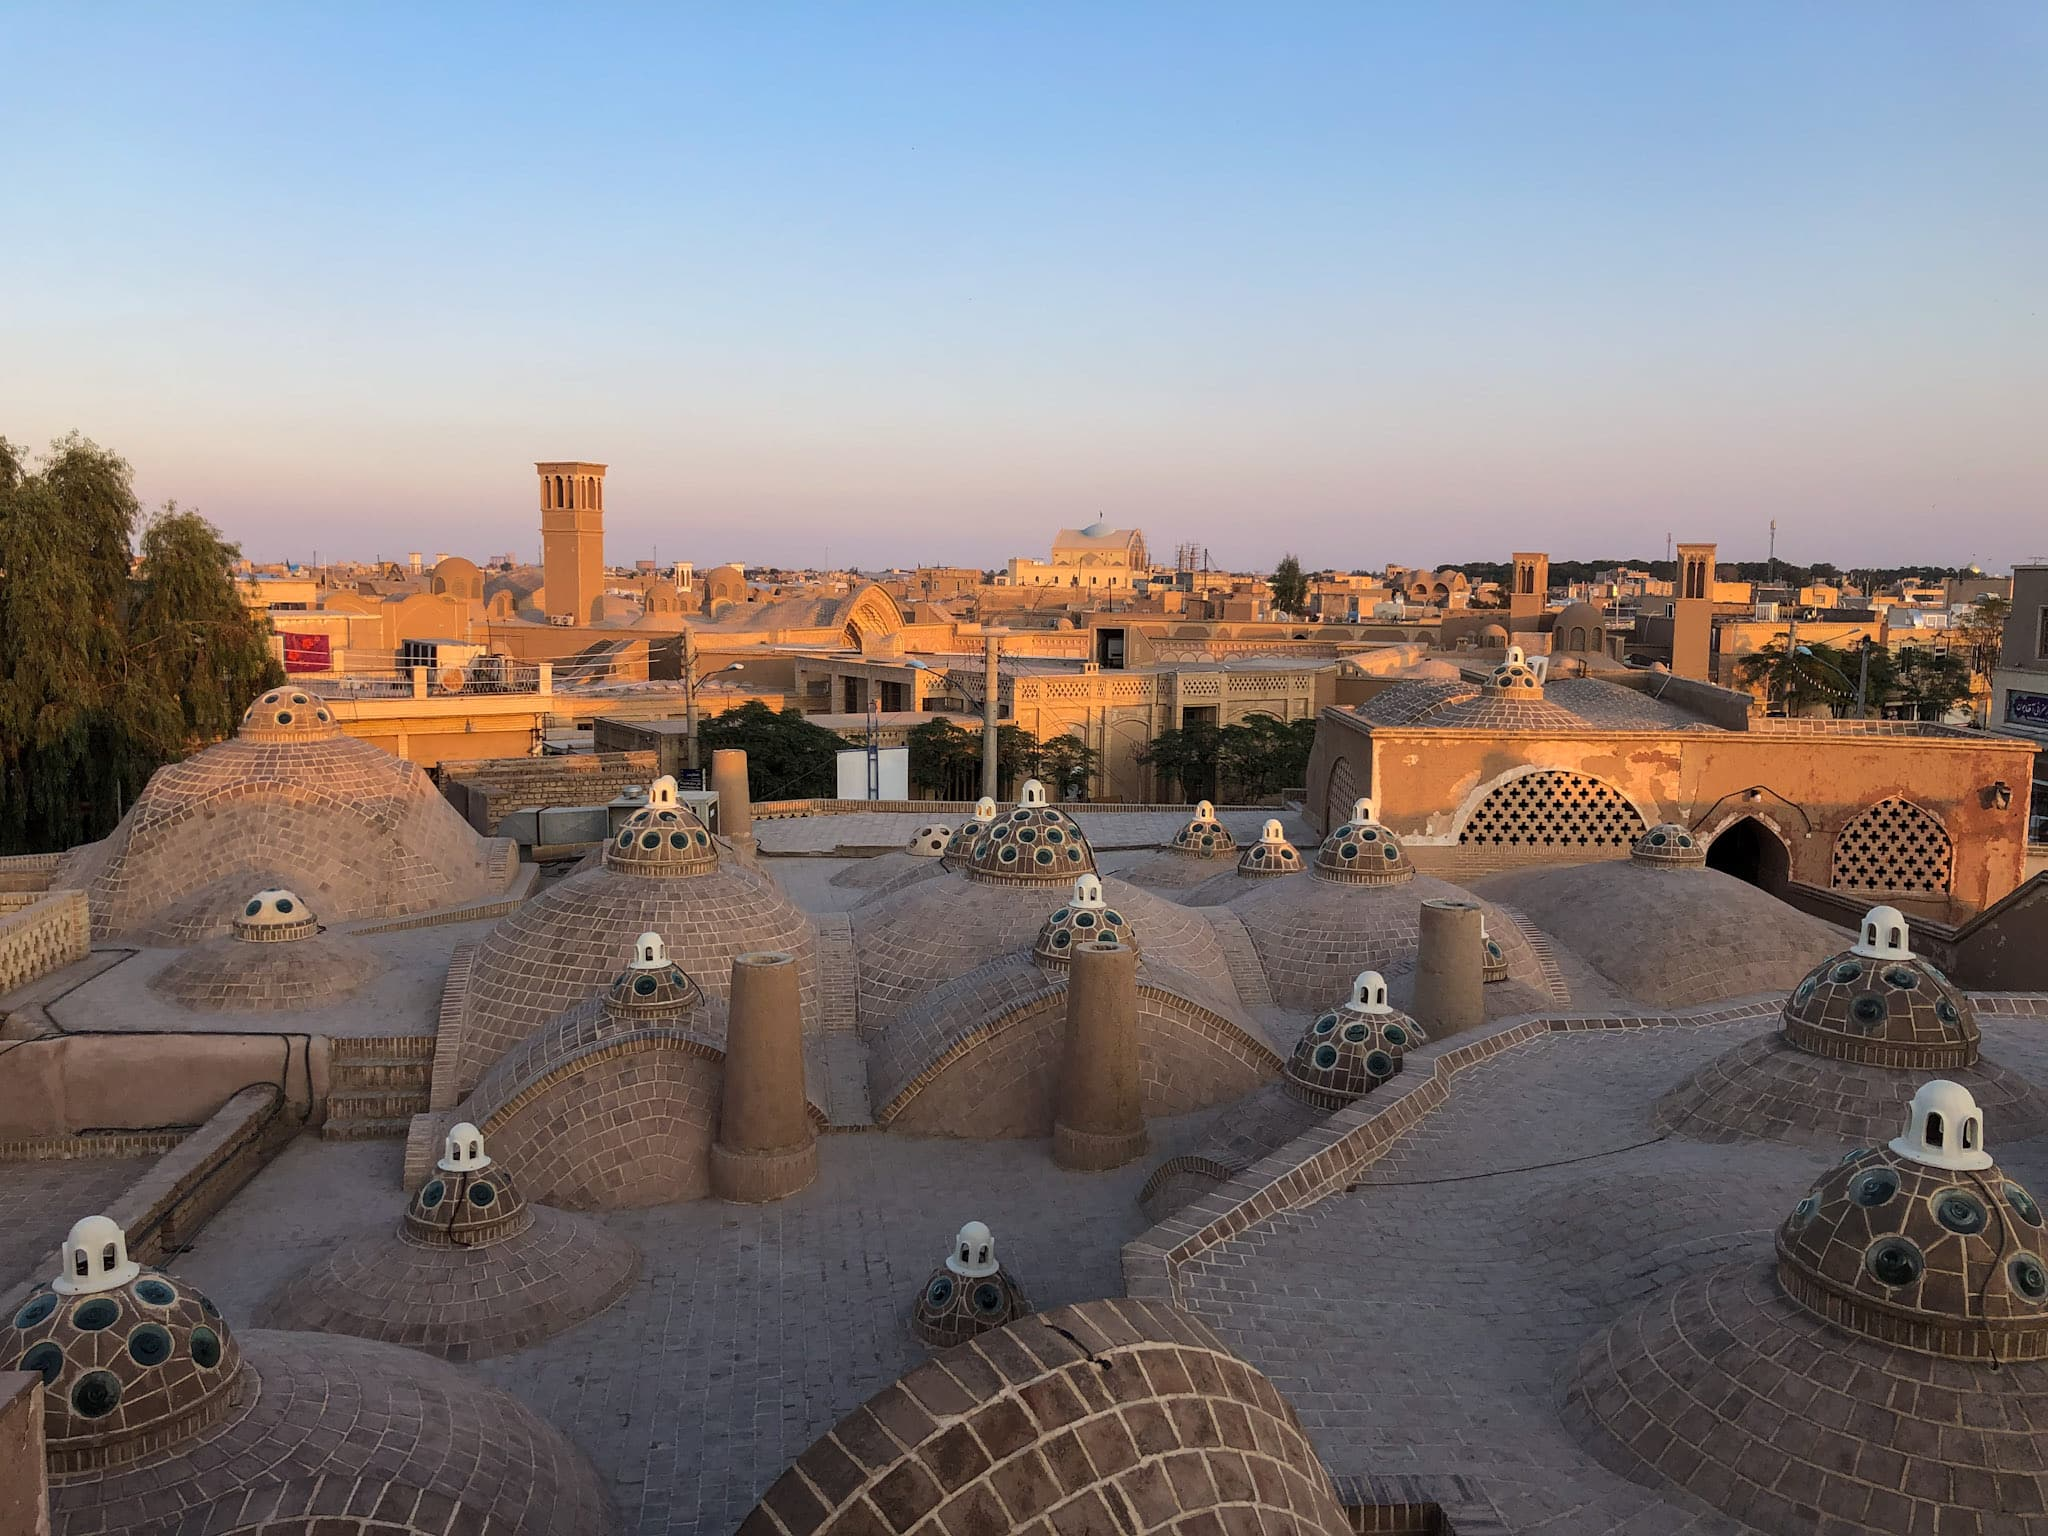 Sunset from the bath house hamam roof in Kashan, Iran